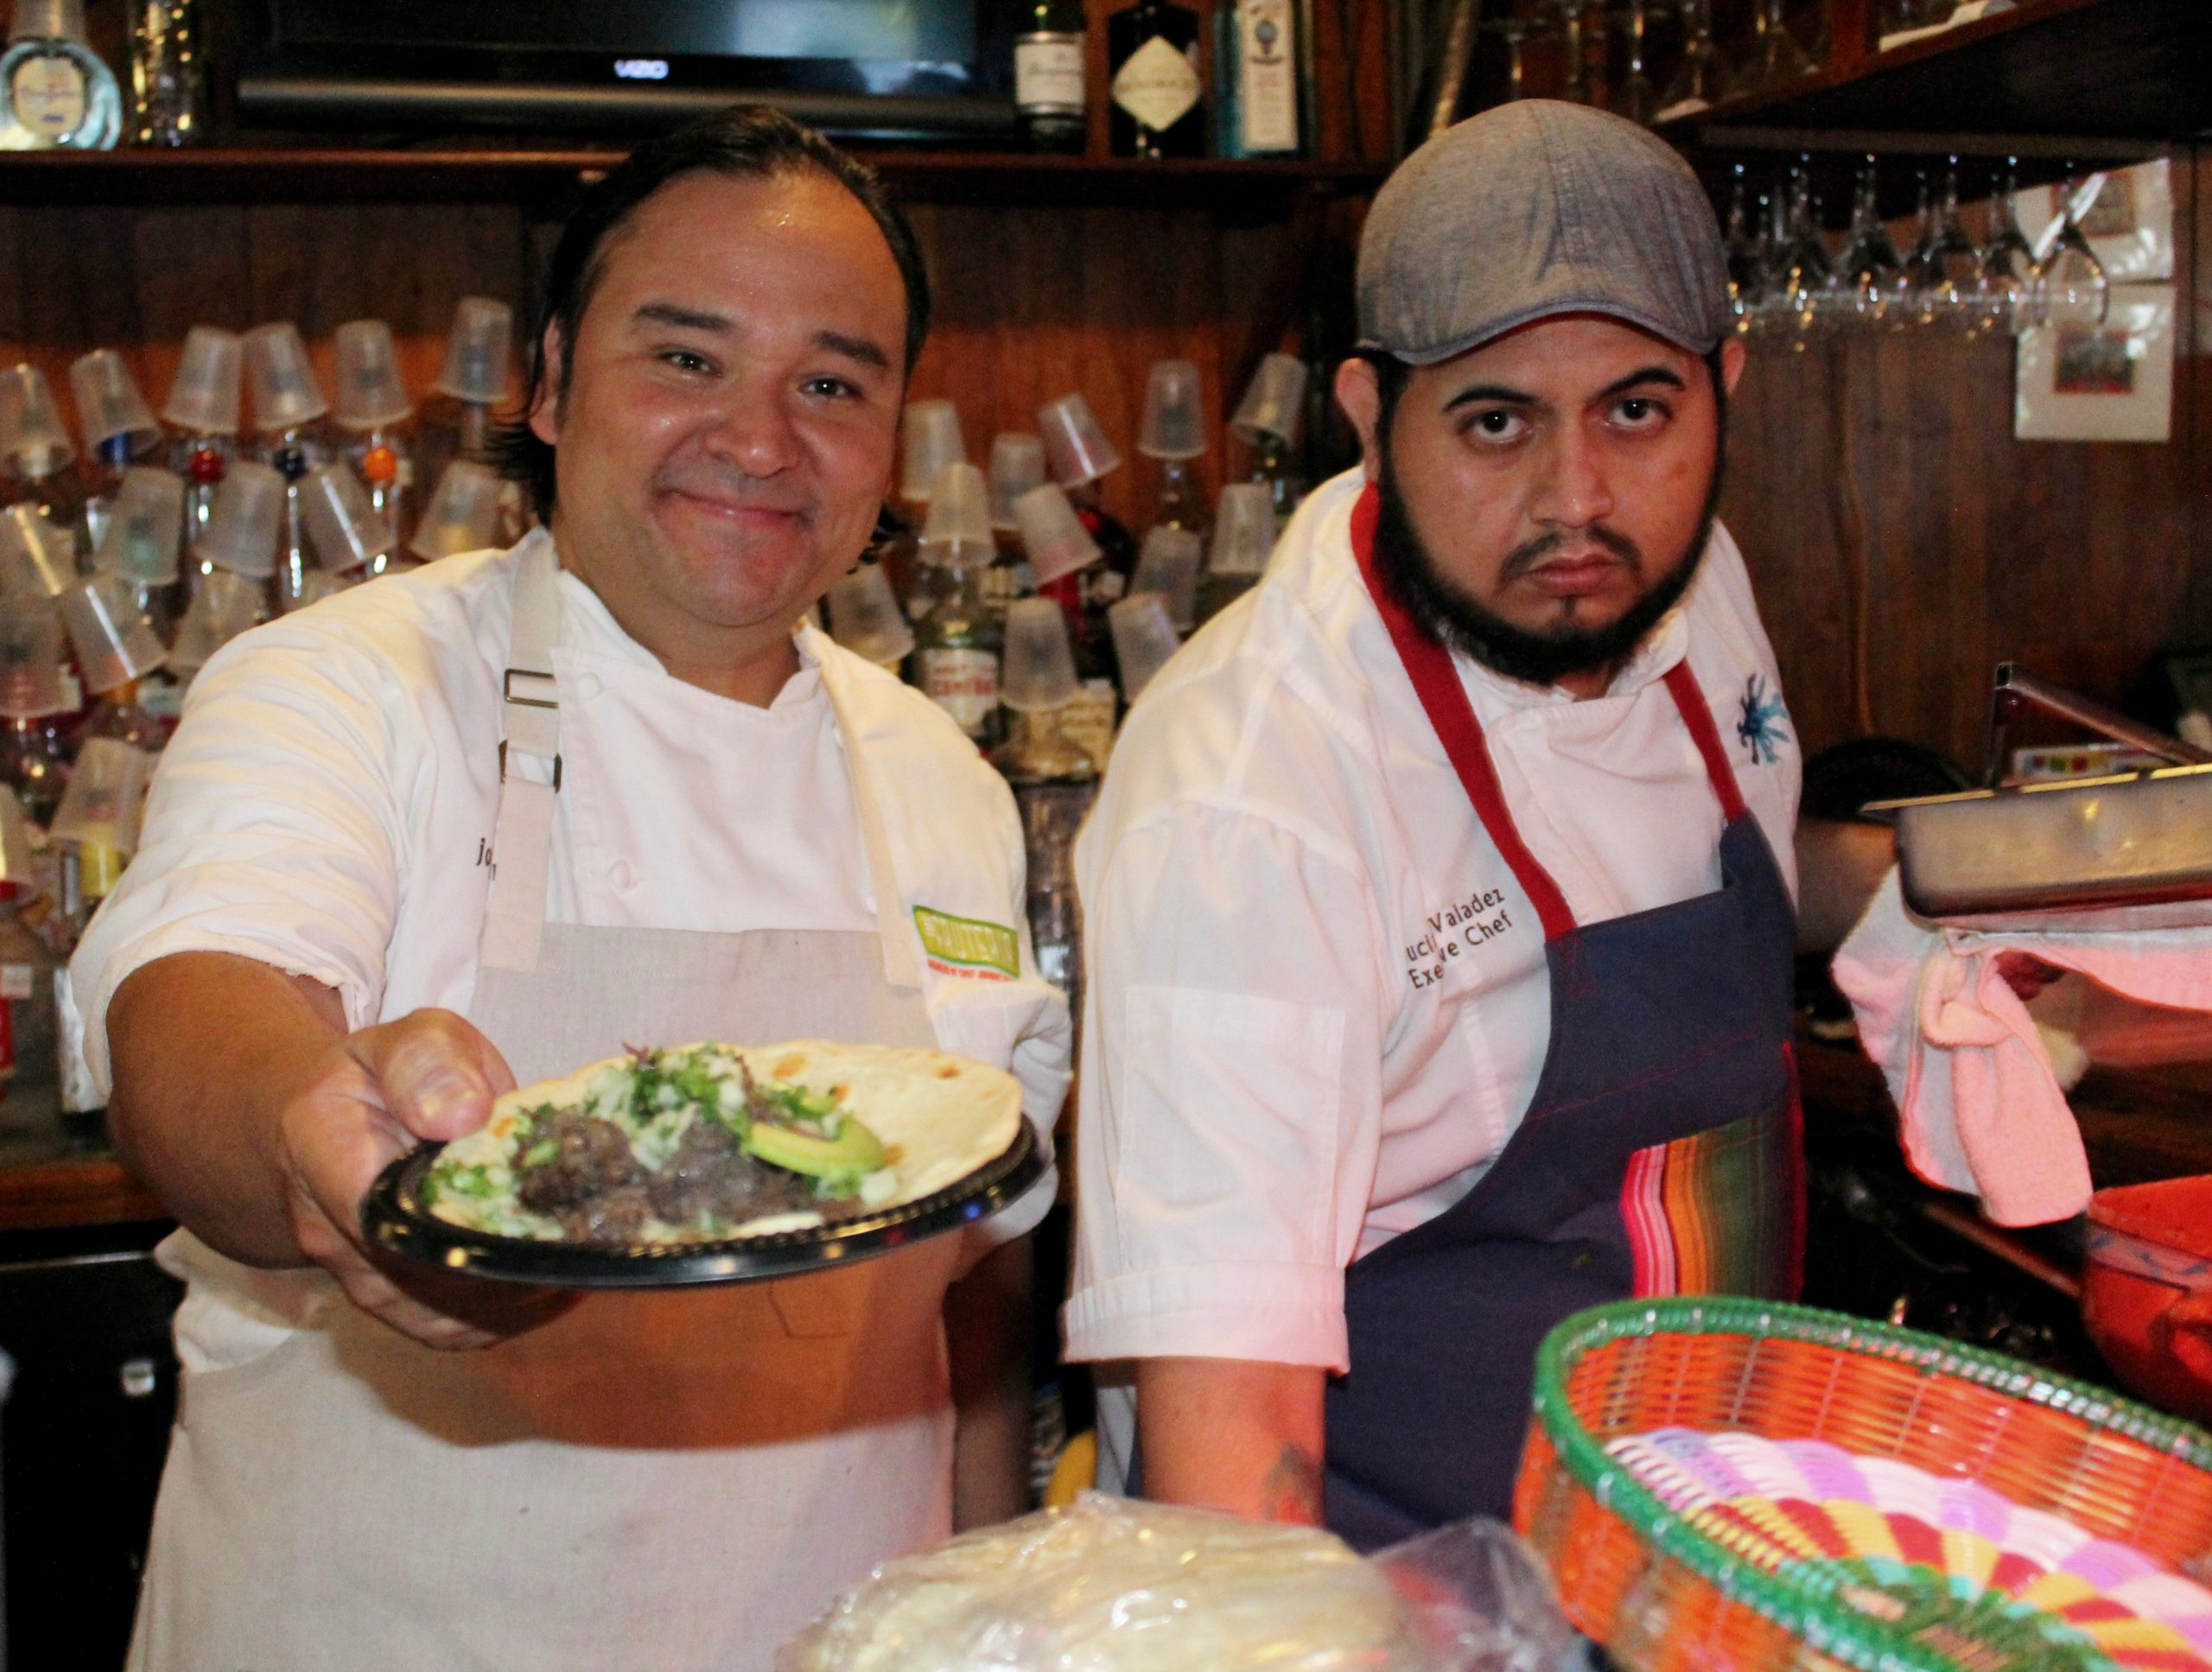 Chef Johnny Hernandez (left) and Executive Chef Luciano Valadez serve up fresh tacos during a competition at Old School Bar and Grill on Friday, March 11, 2016. The competition kicked off San Antonio's South by Southwest initiative. Photo by Edmond ortiz